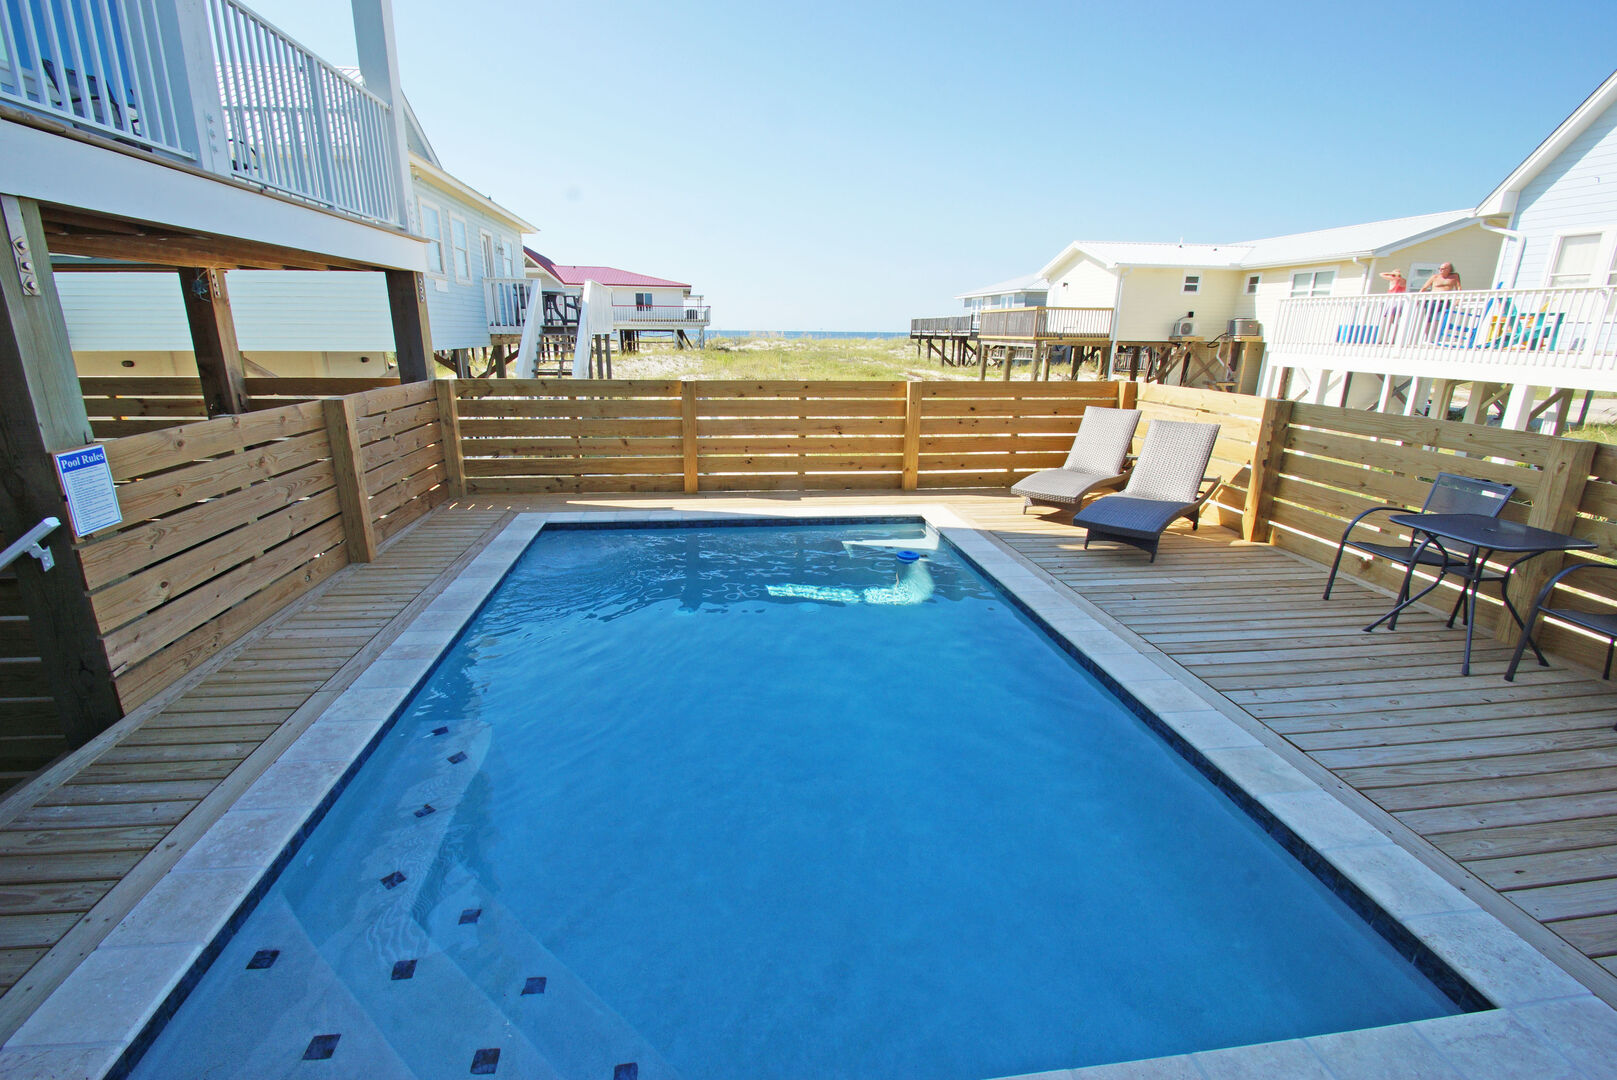 The private pool of this Vacation Home in Gulf Shores is the perfect place to relax in the sun